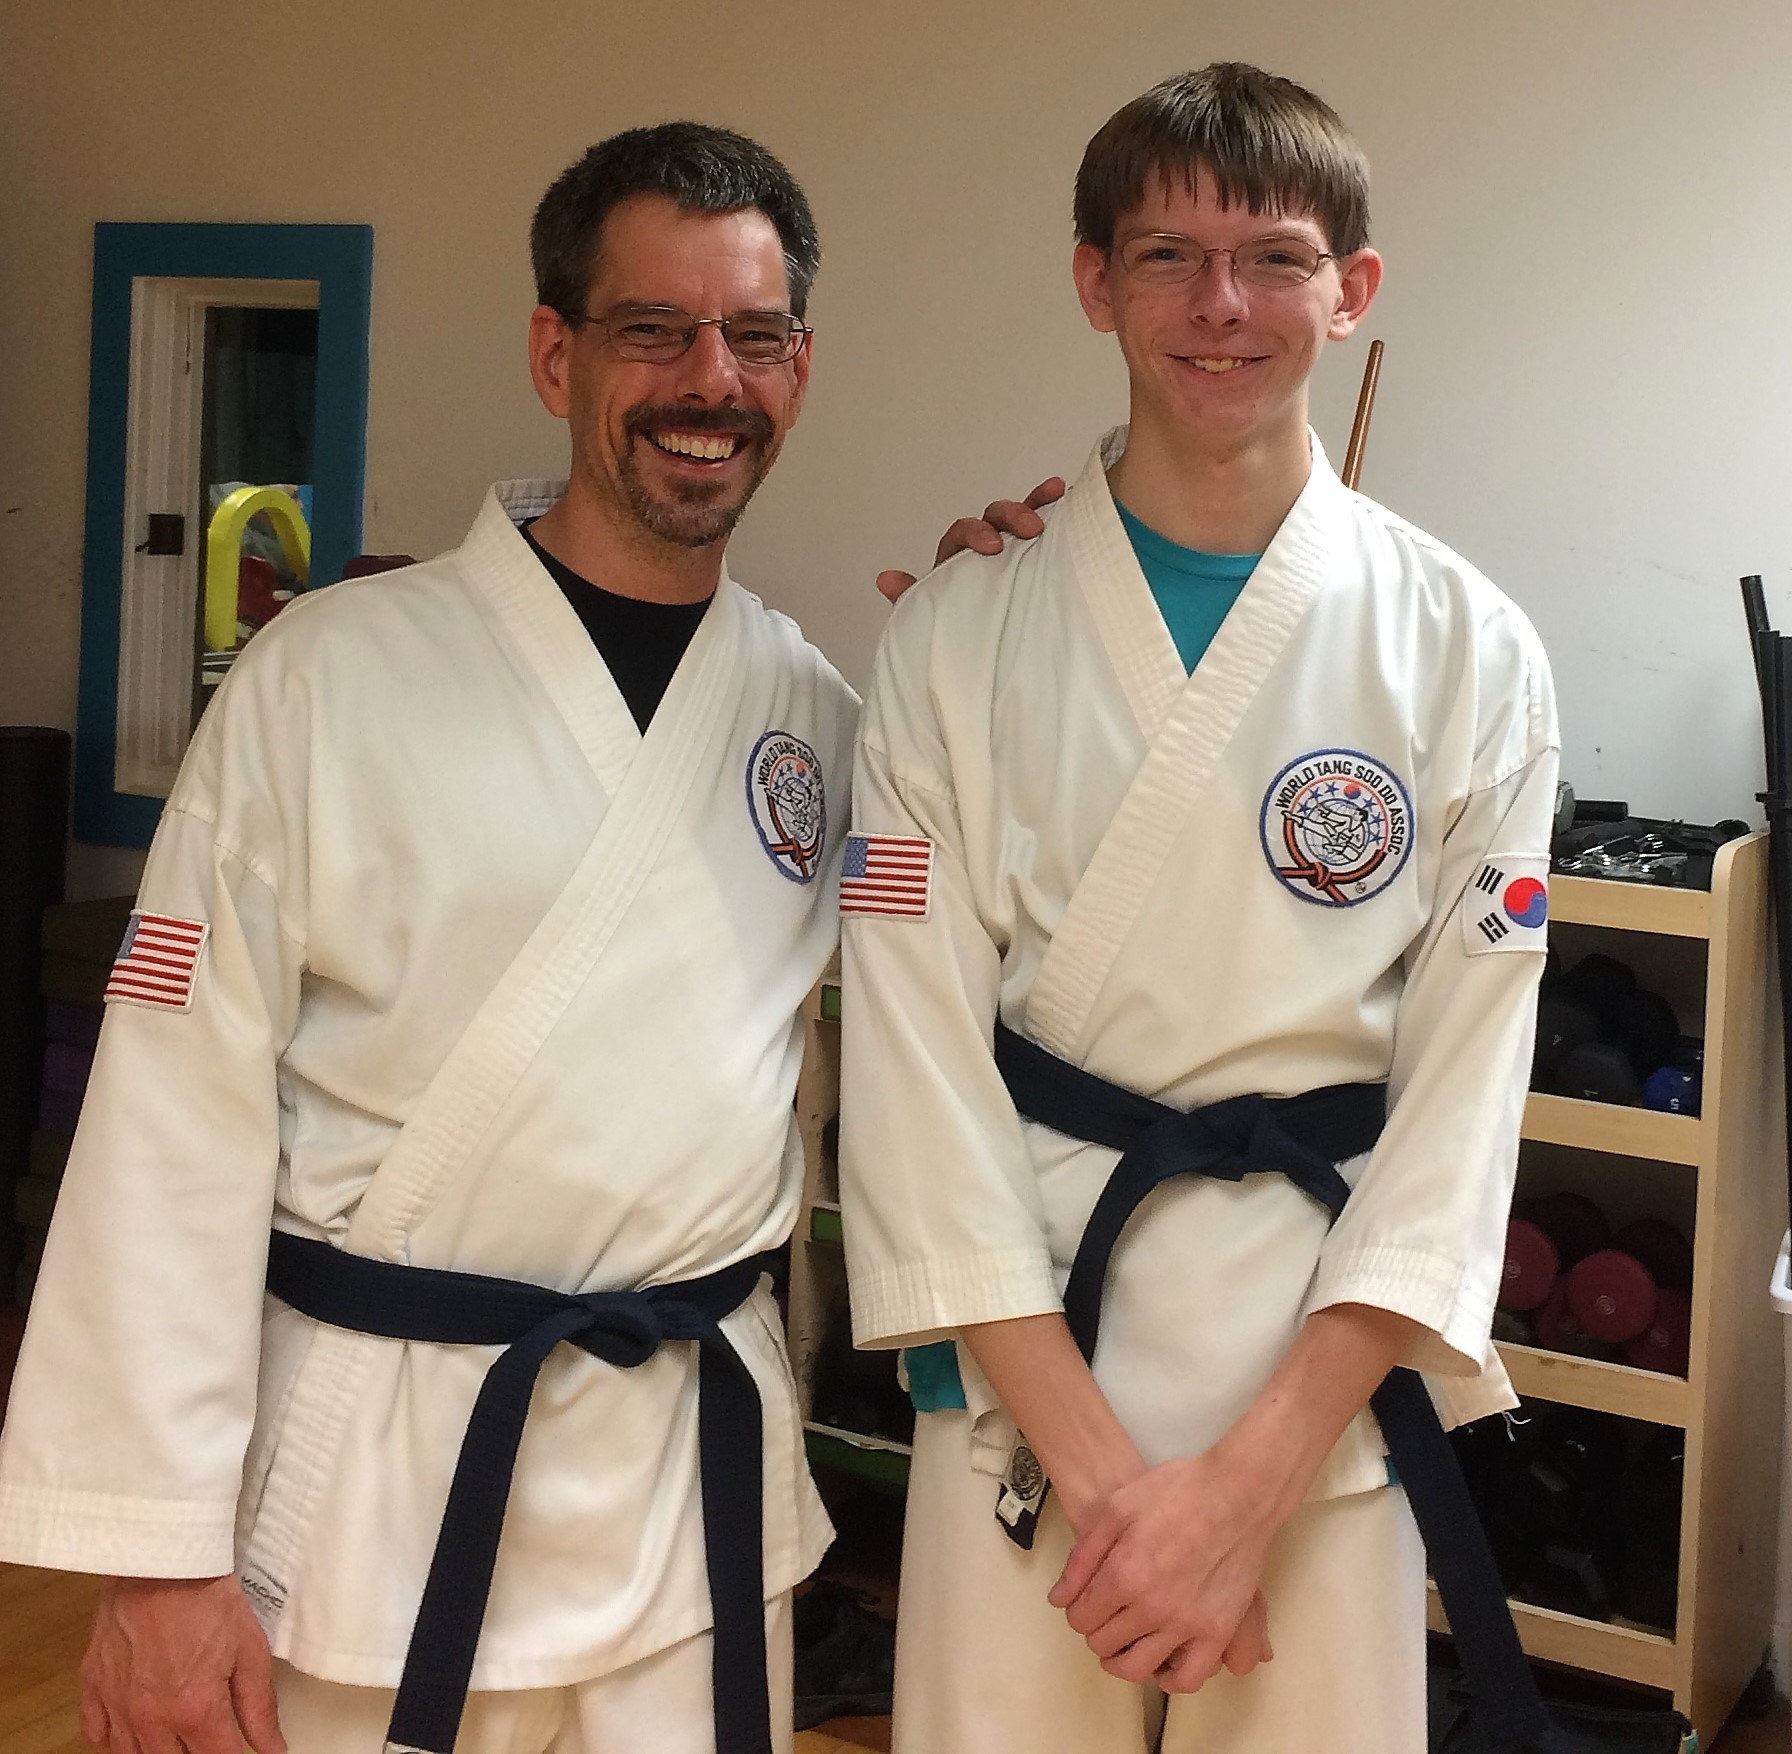 mikes testimonial, bellefonte, summers martial arts, adults class, health, confidence